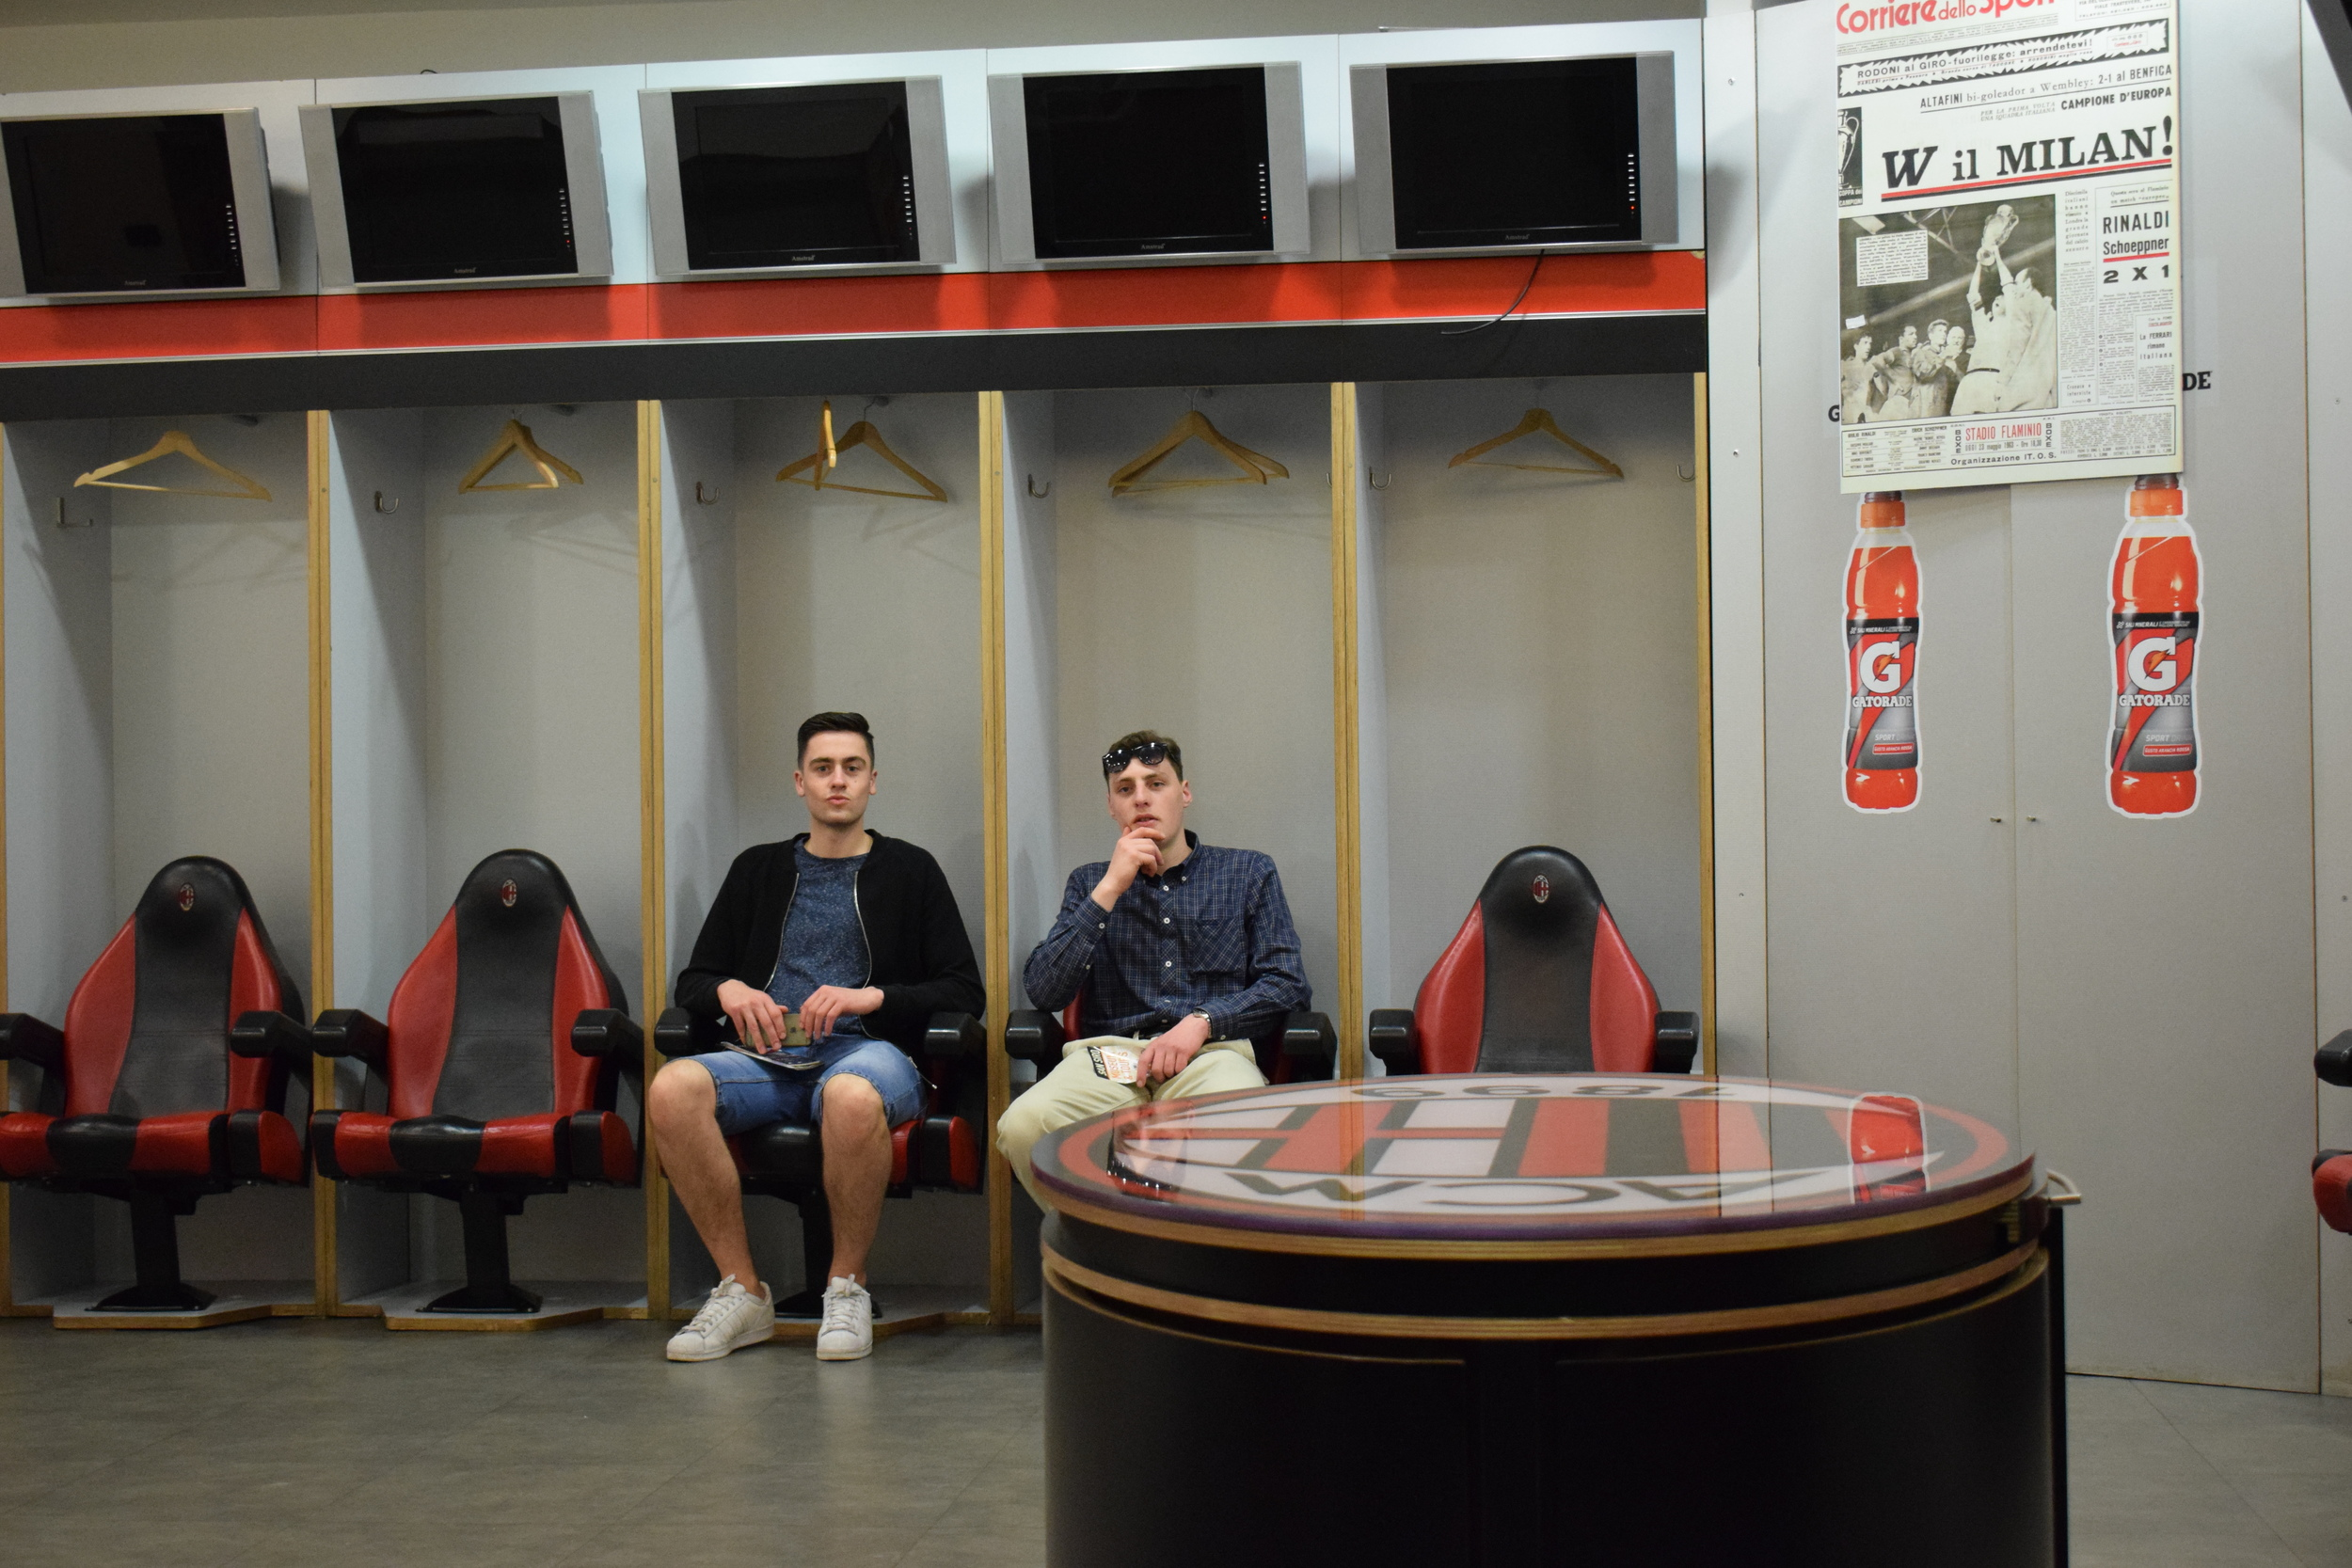 The AC dressing room.